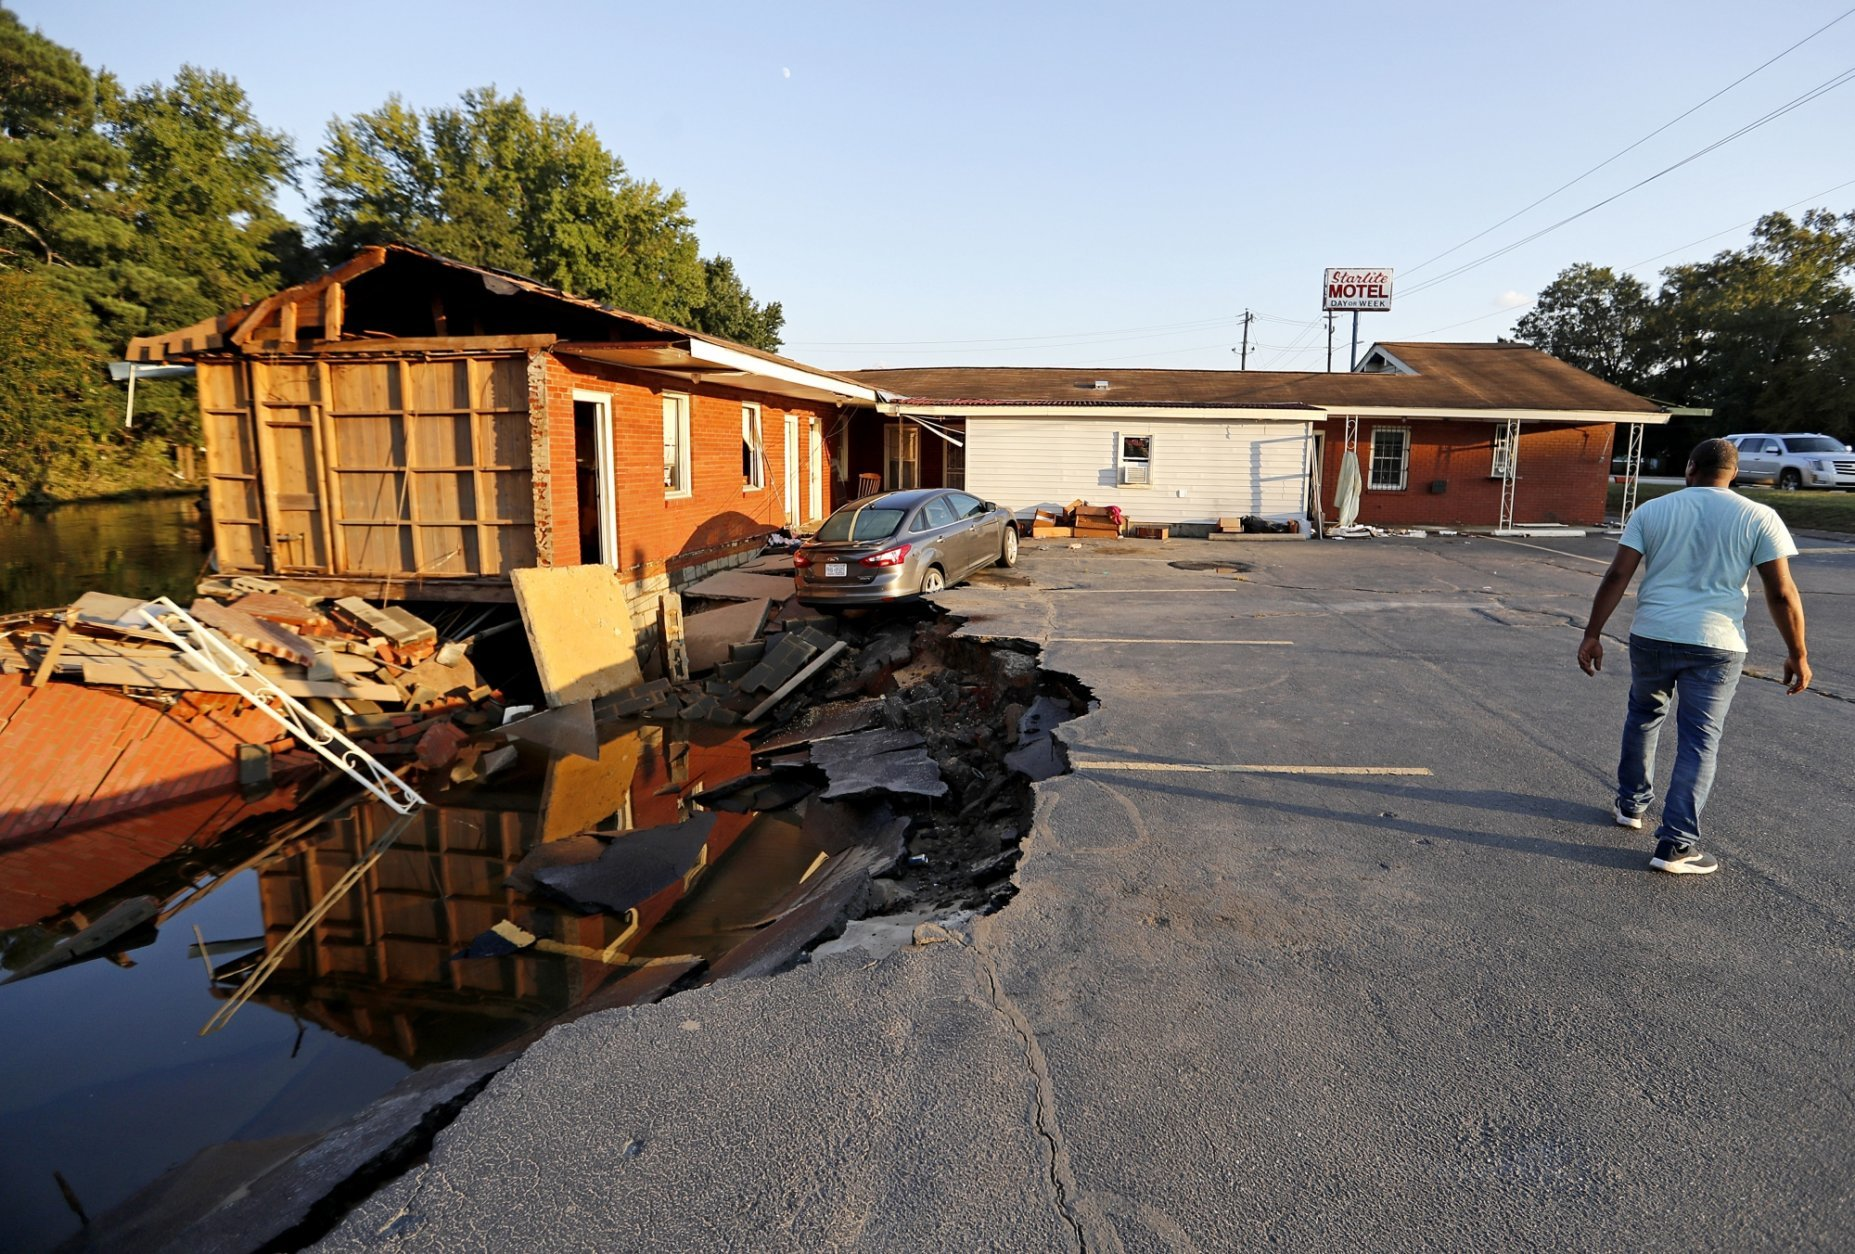 In this Wednesday, Sept. 19, 2018 photo, part of the Starlite Motel is washed away in the aftermath of flooding from Hurricane Florence in Spring Lake, N.C. Florence washed away half the rooms at the Starlite Motel ripping away the livelihood of a family that bought it in recent months. (AP Photo/David Goldman)